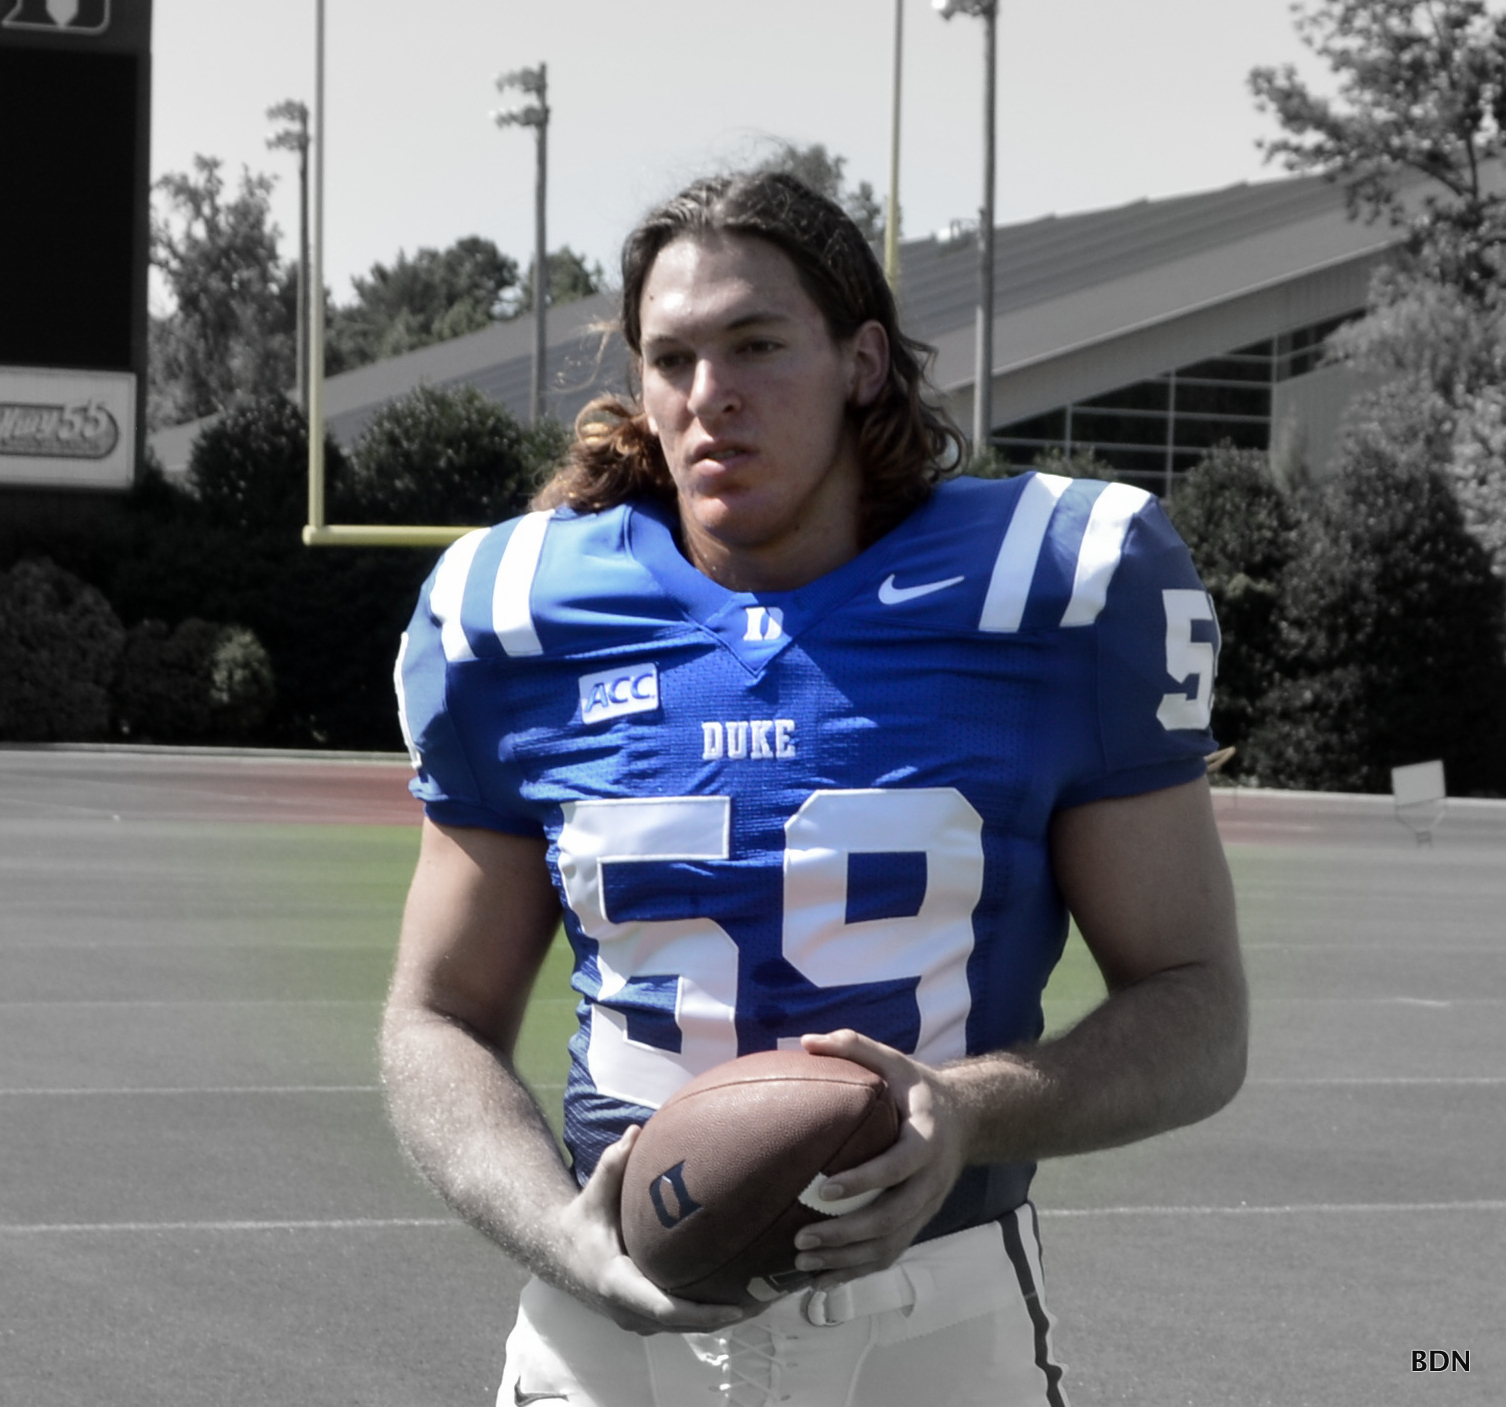 LB Kelby Brown returns from injury for Duke in 2013